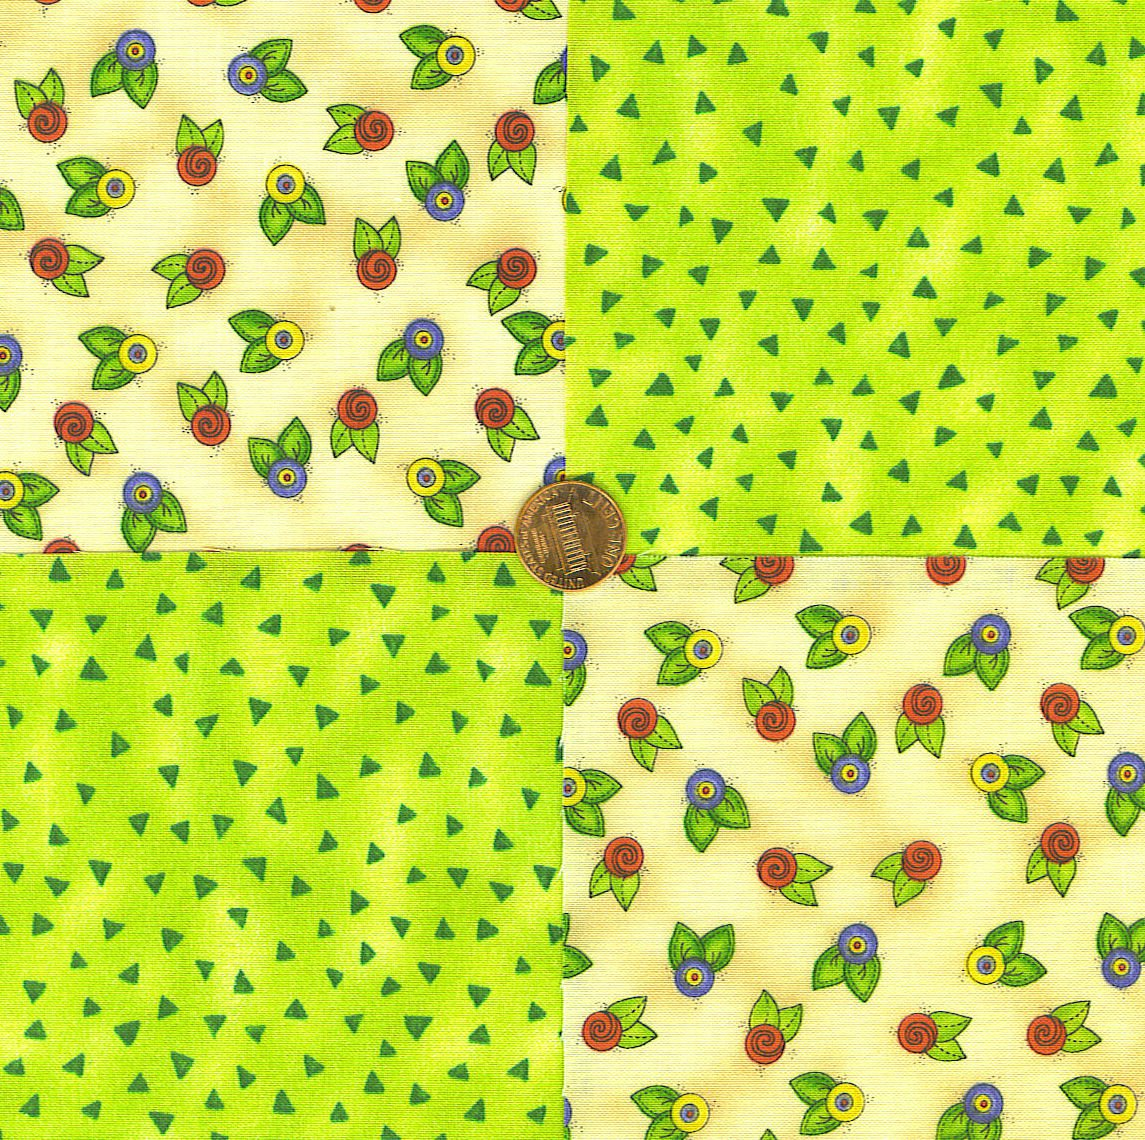 Blossum Beauty  Fabric Squares Sewing 100% Cotton Novelty LP1